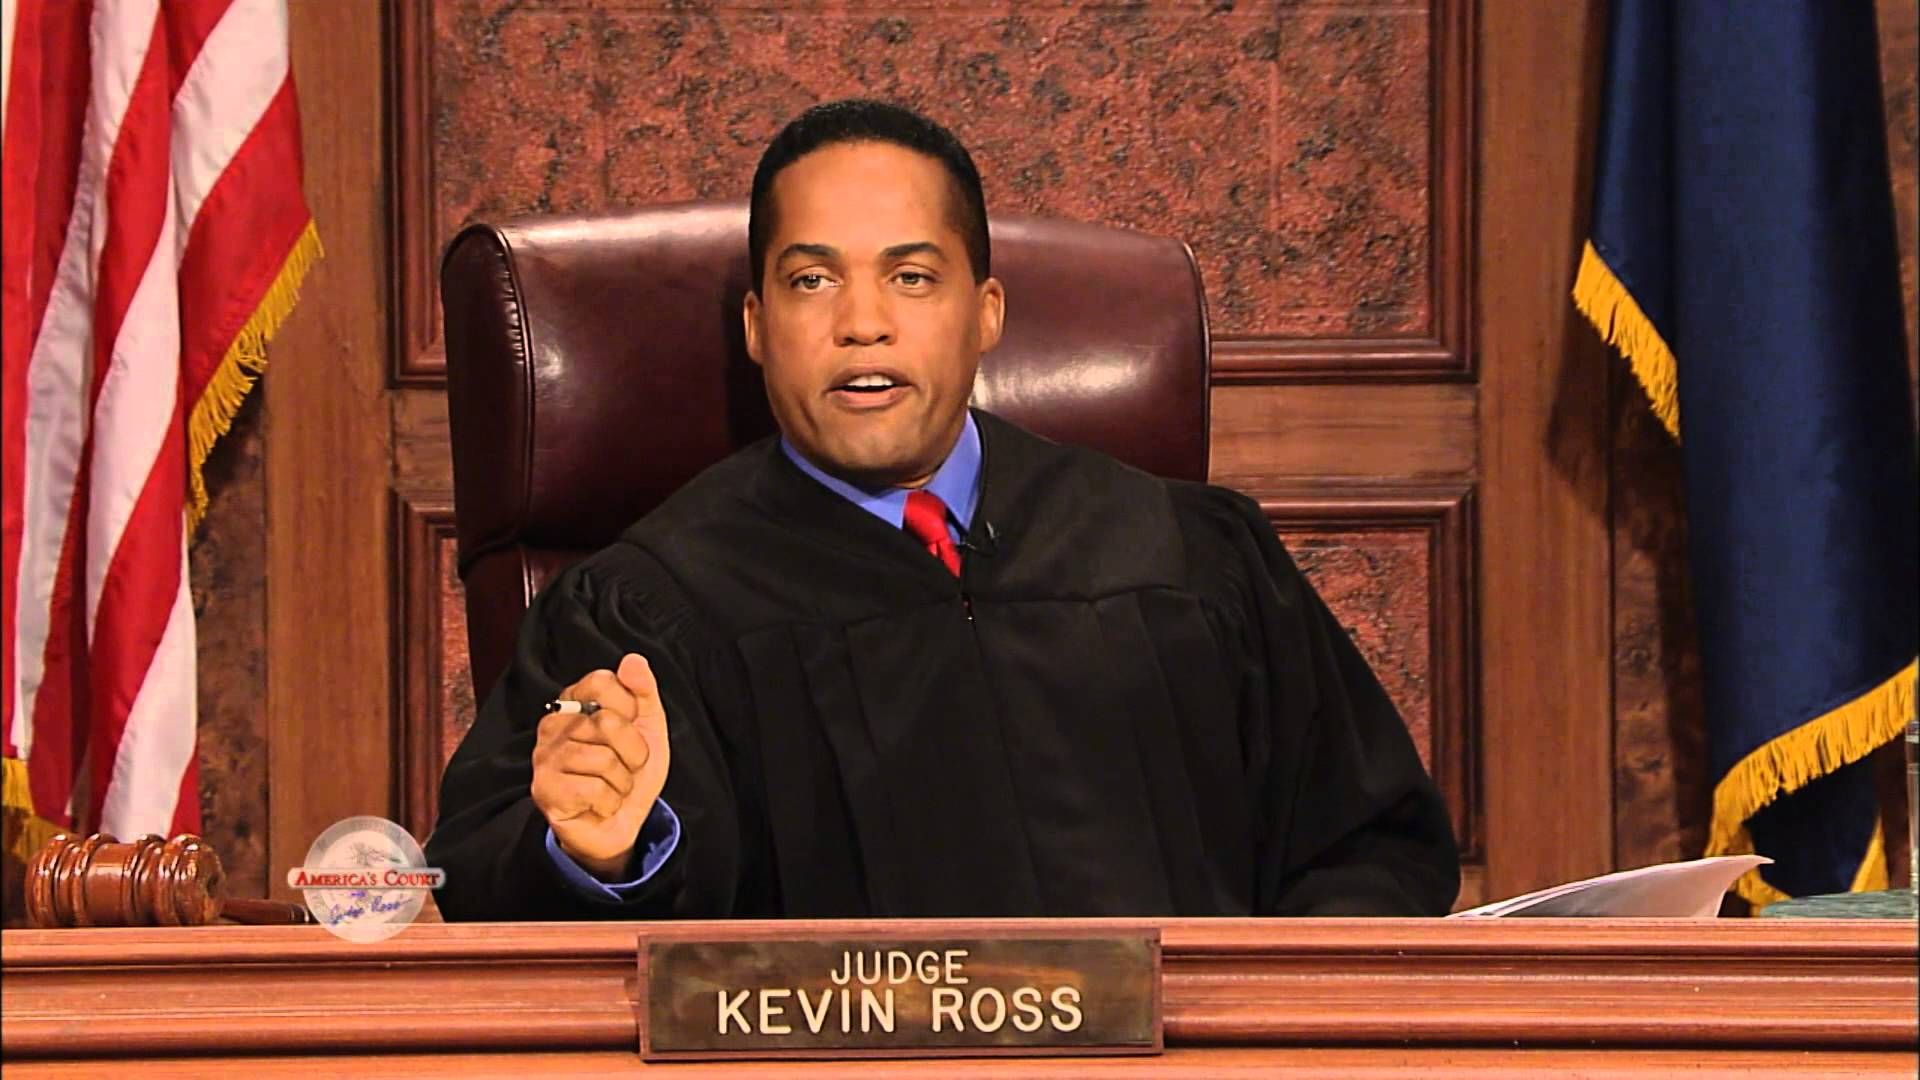 judge kevin ross